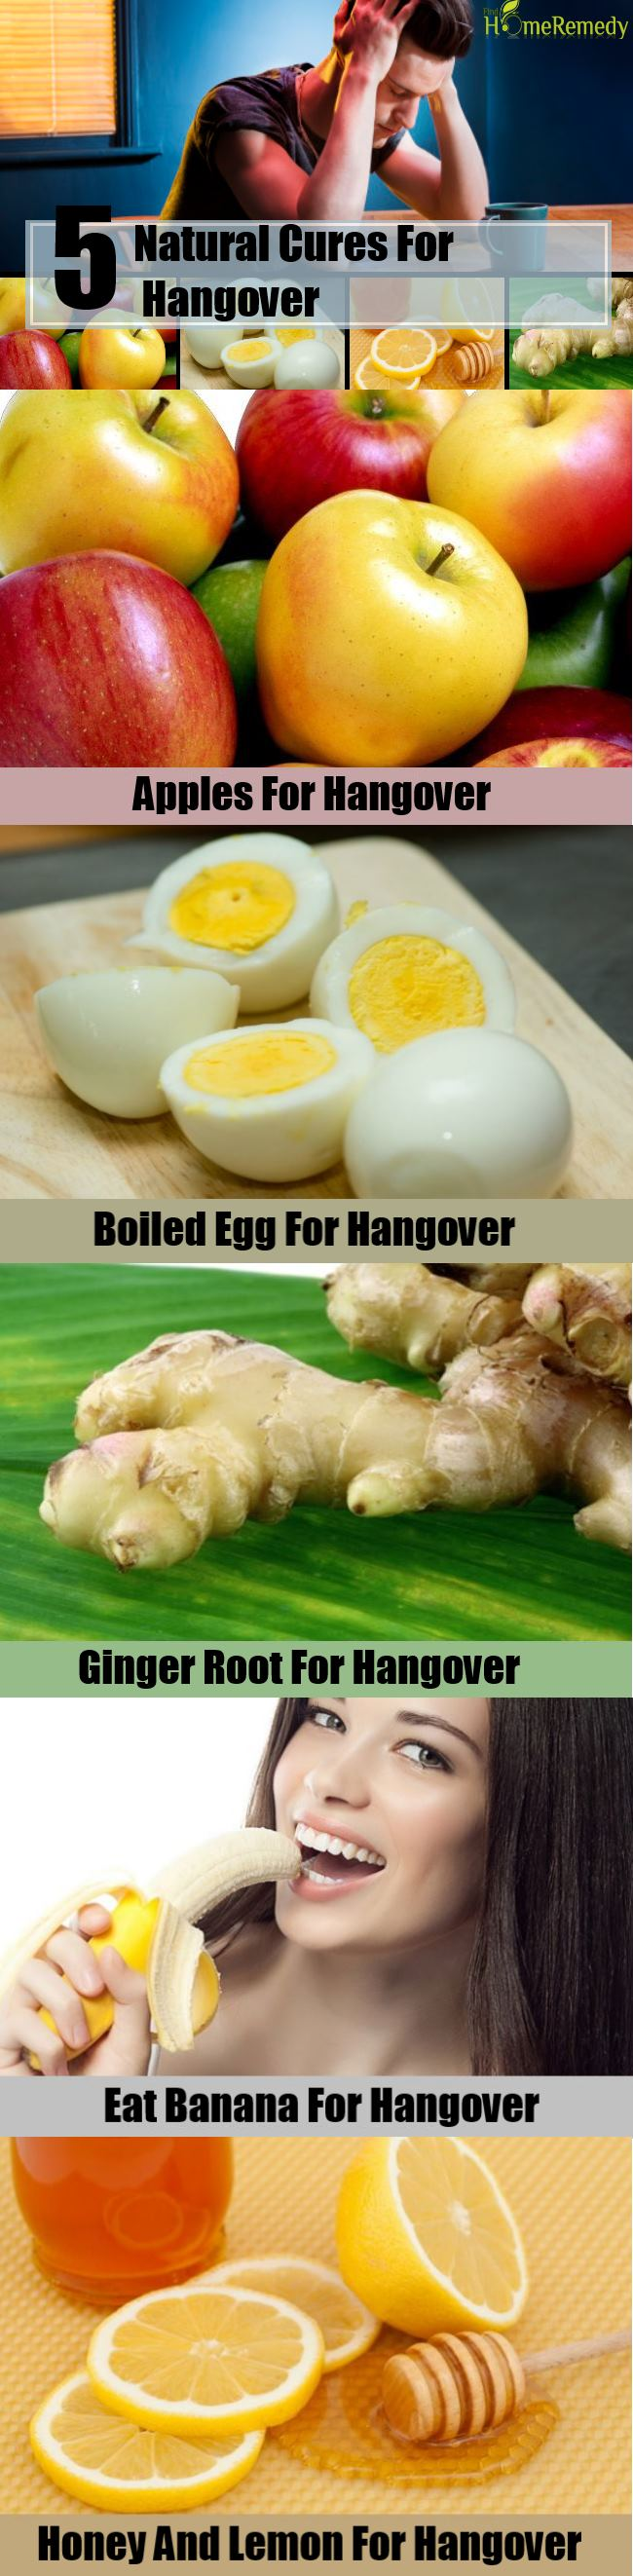 5 Natural Cures For Hangover